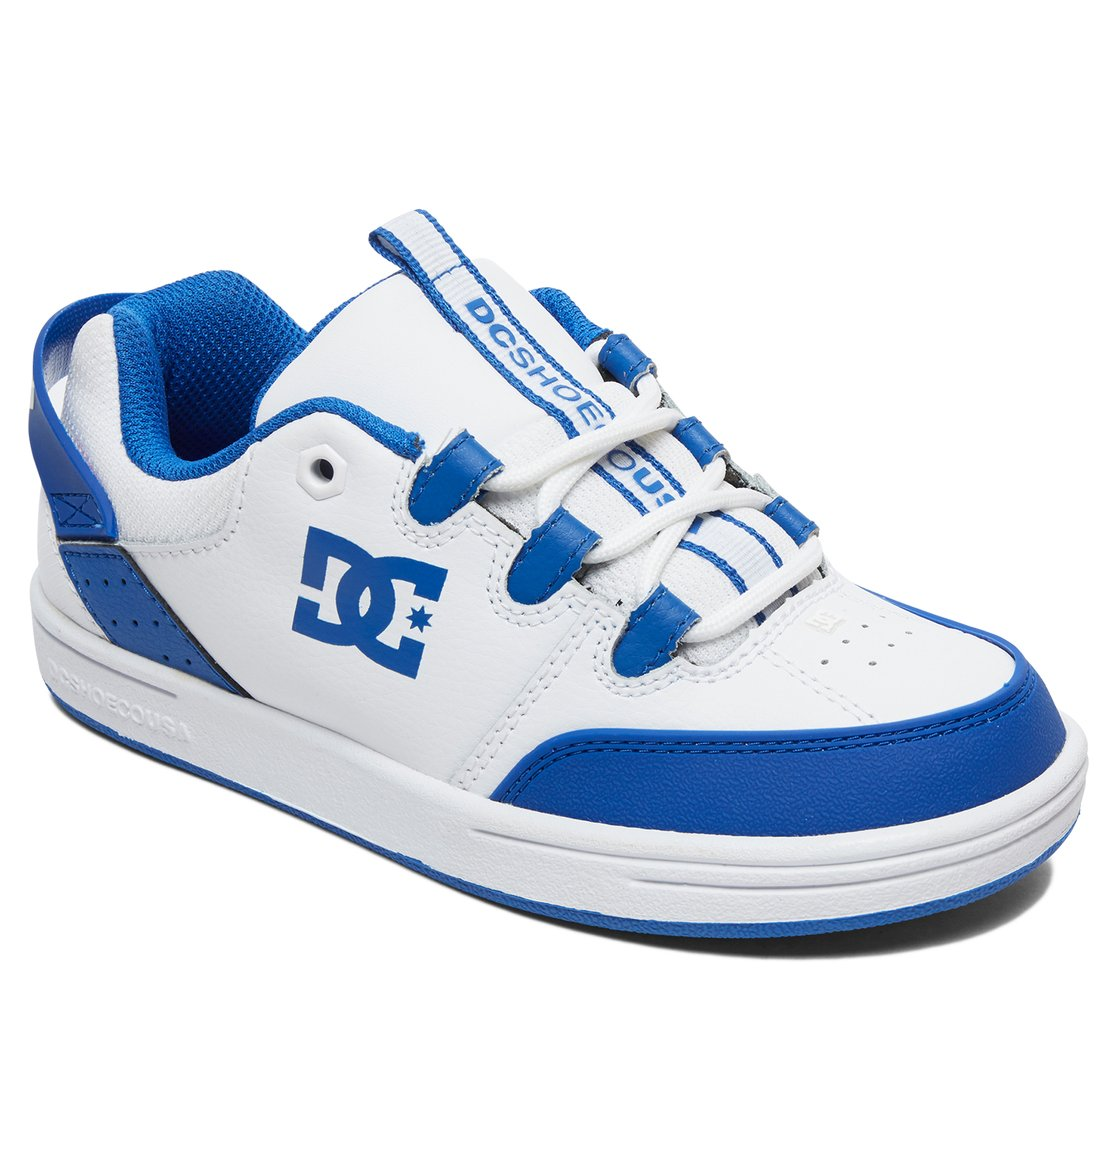 fe5af8309c5 DC-Shoes-Syntax-Shoes-for-Boys-ADBS100257 thumbnail 22